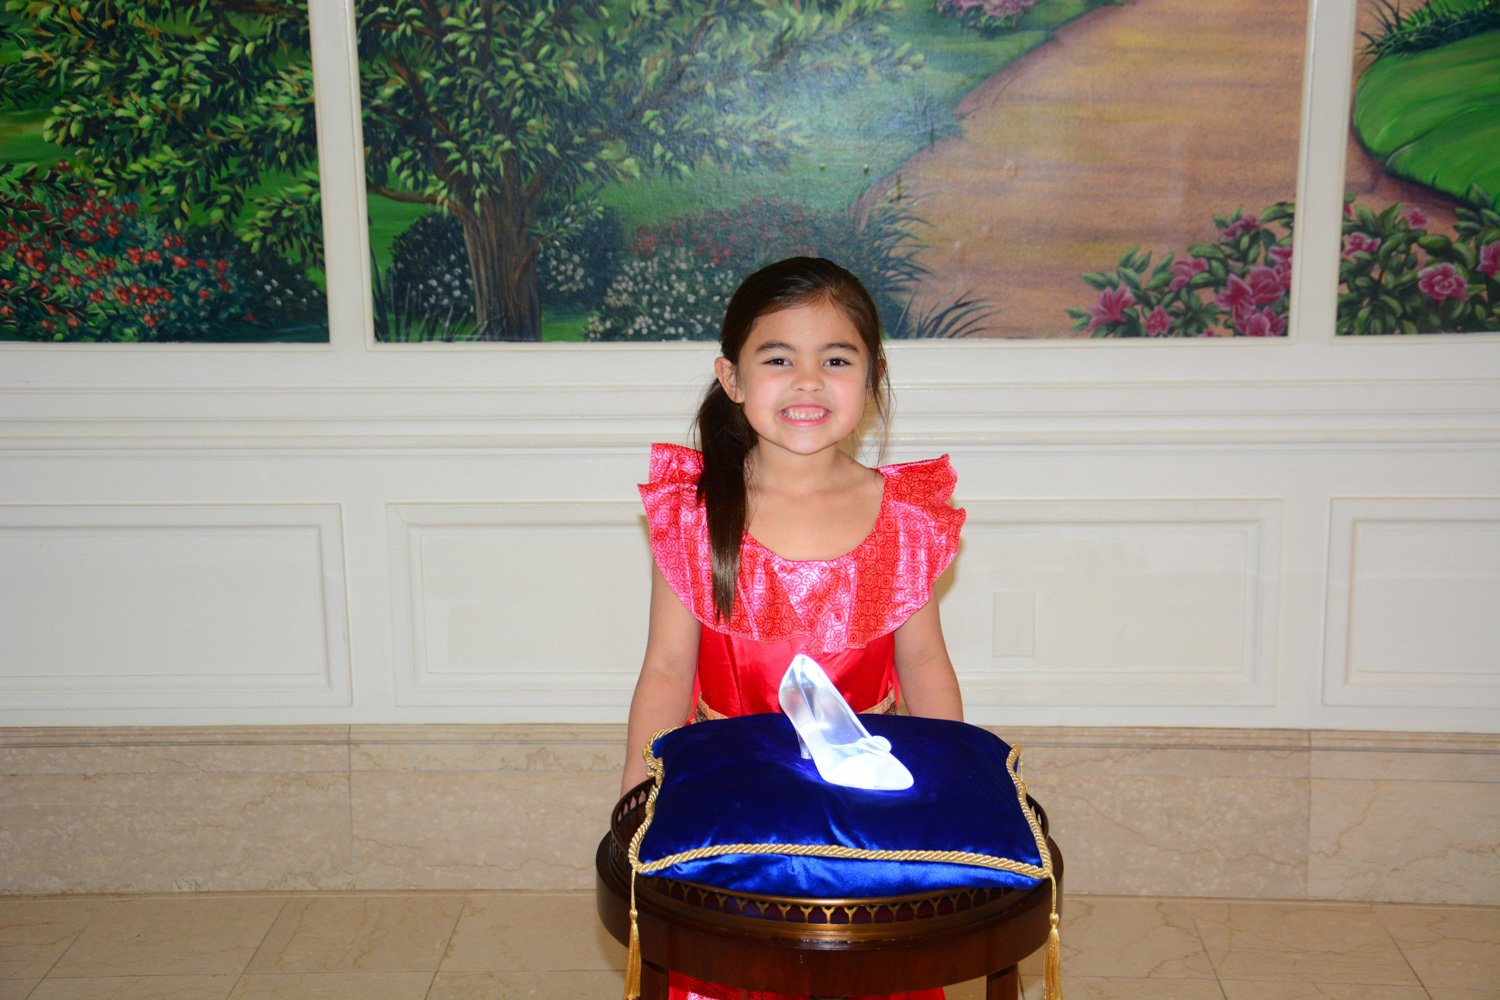 Disney restaurant review at 1900 park fare with glass slipper photo